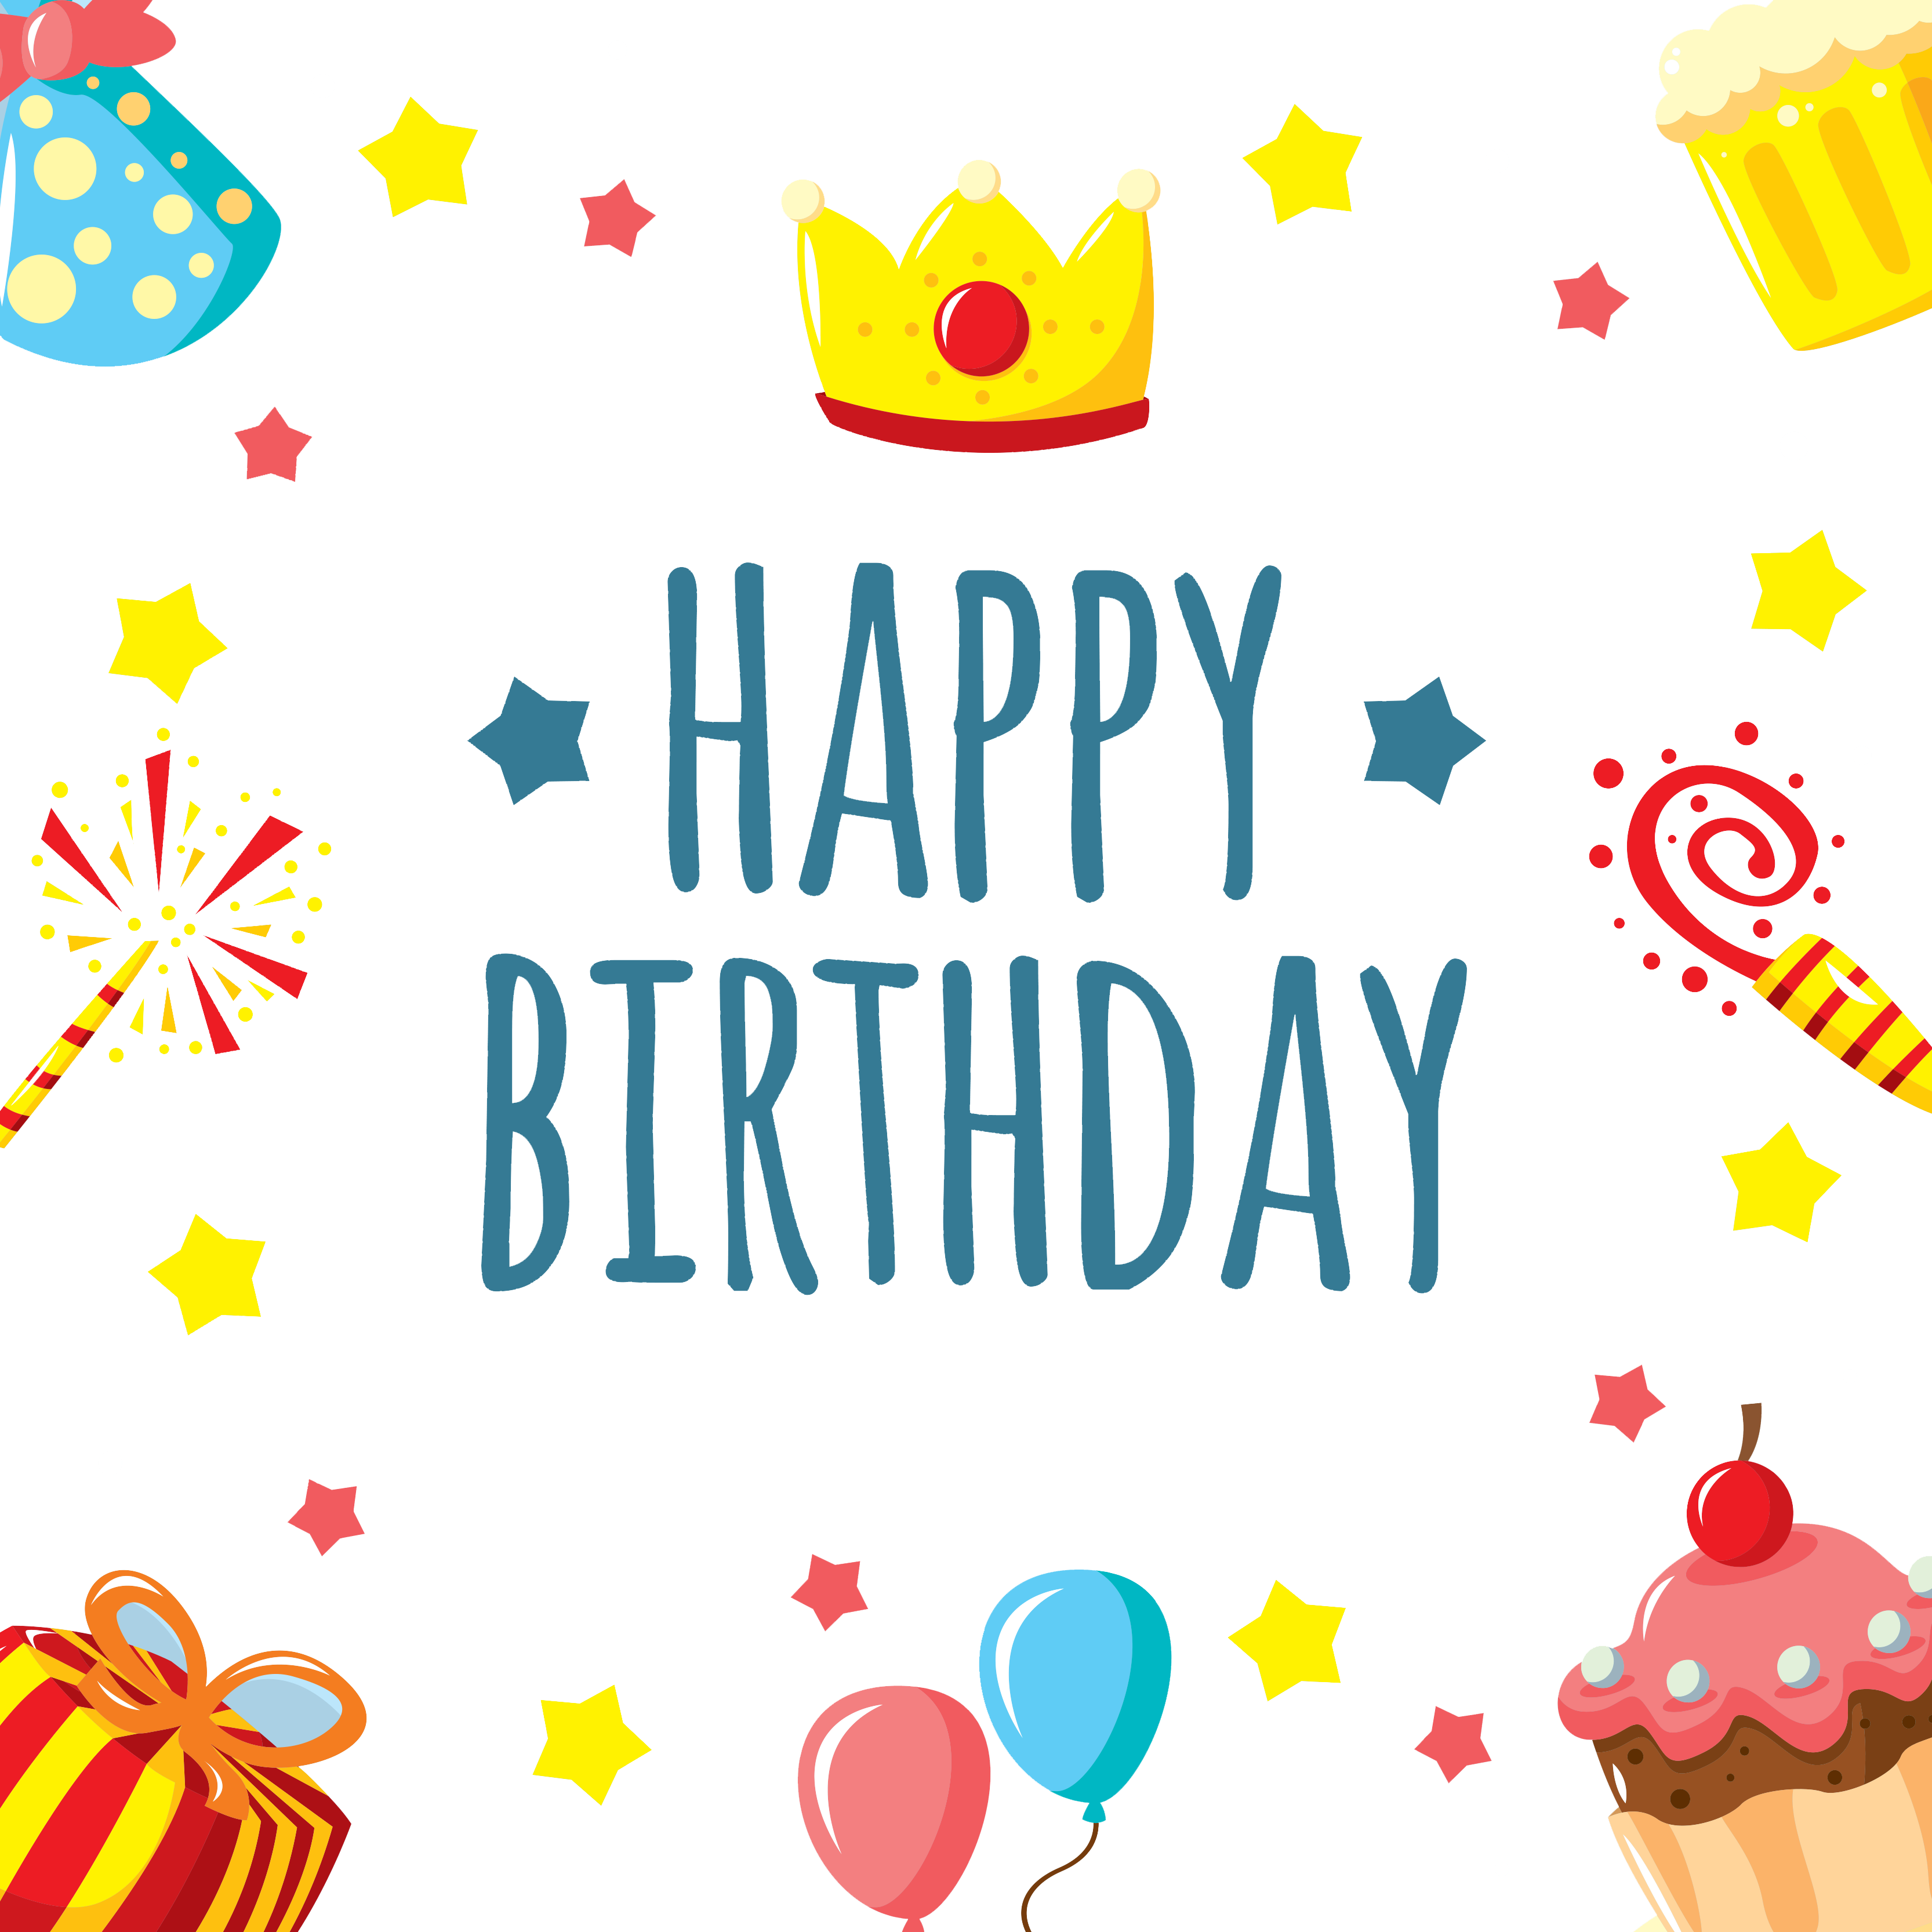 Happy birthday to you. Fun background png clip art free download